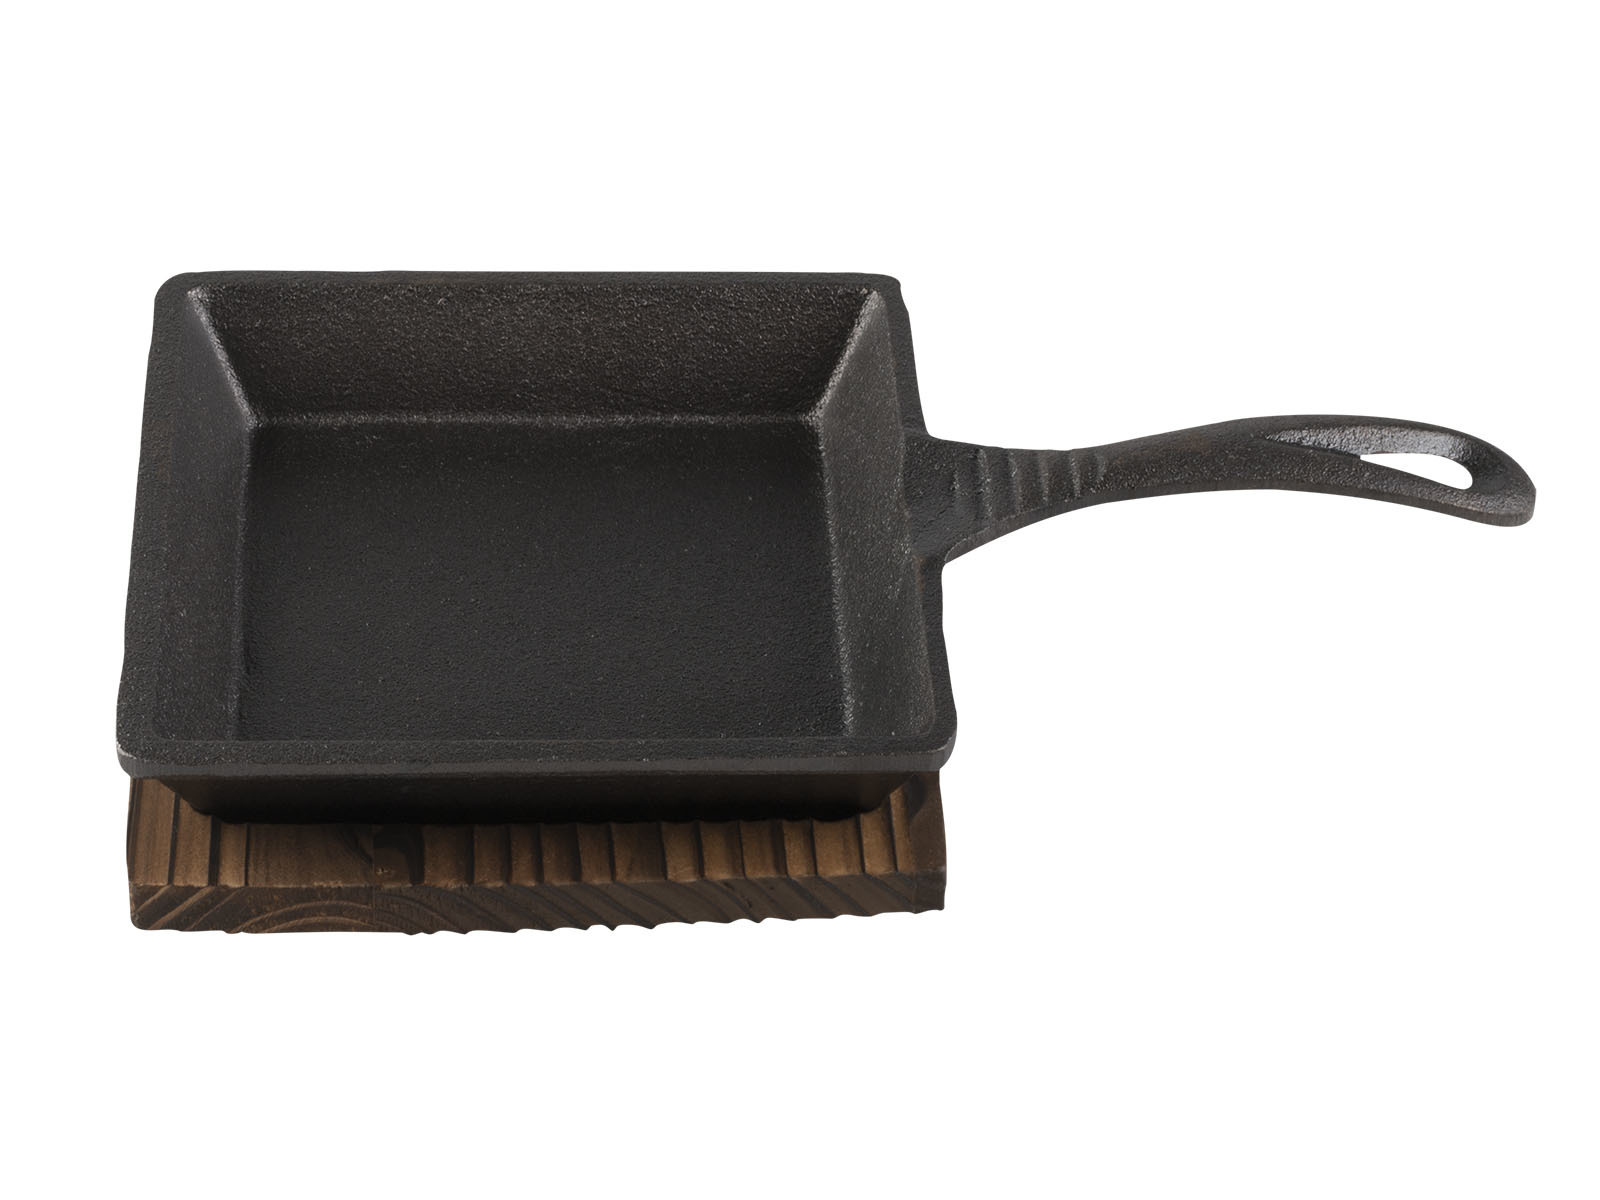 Sabatier Maison Small Square Cast Iron Pan And Base